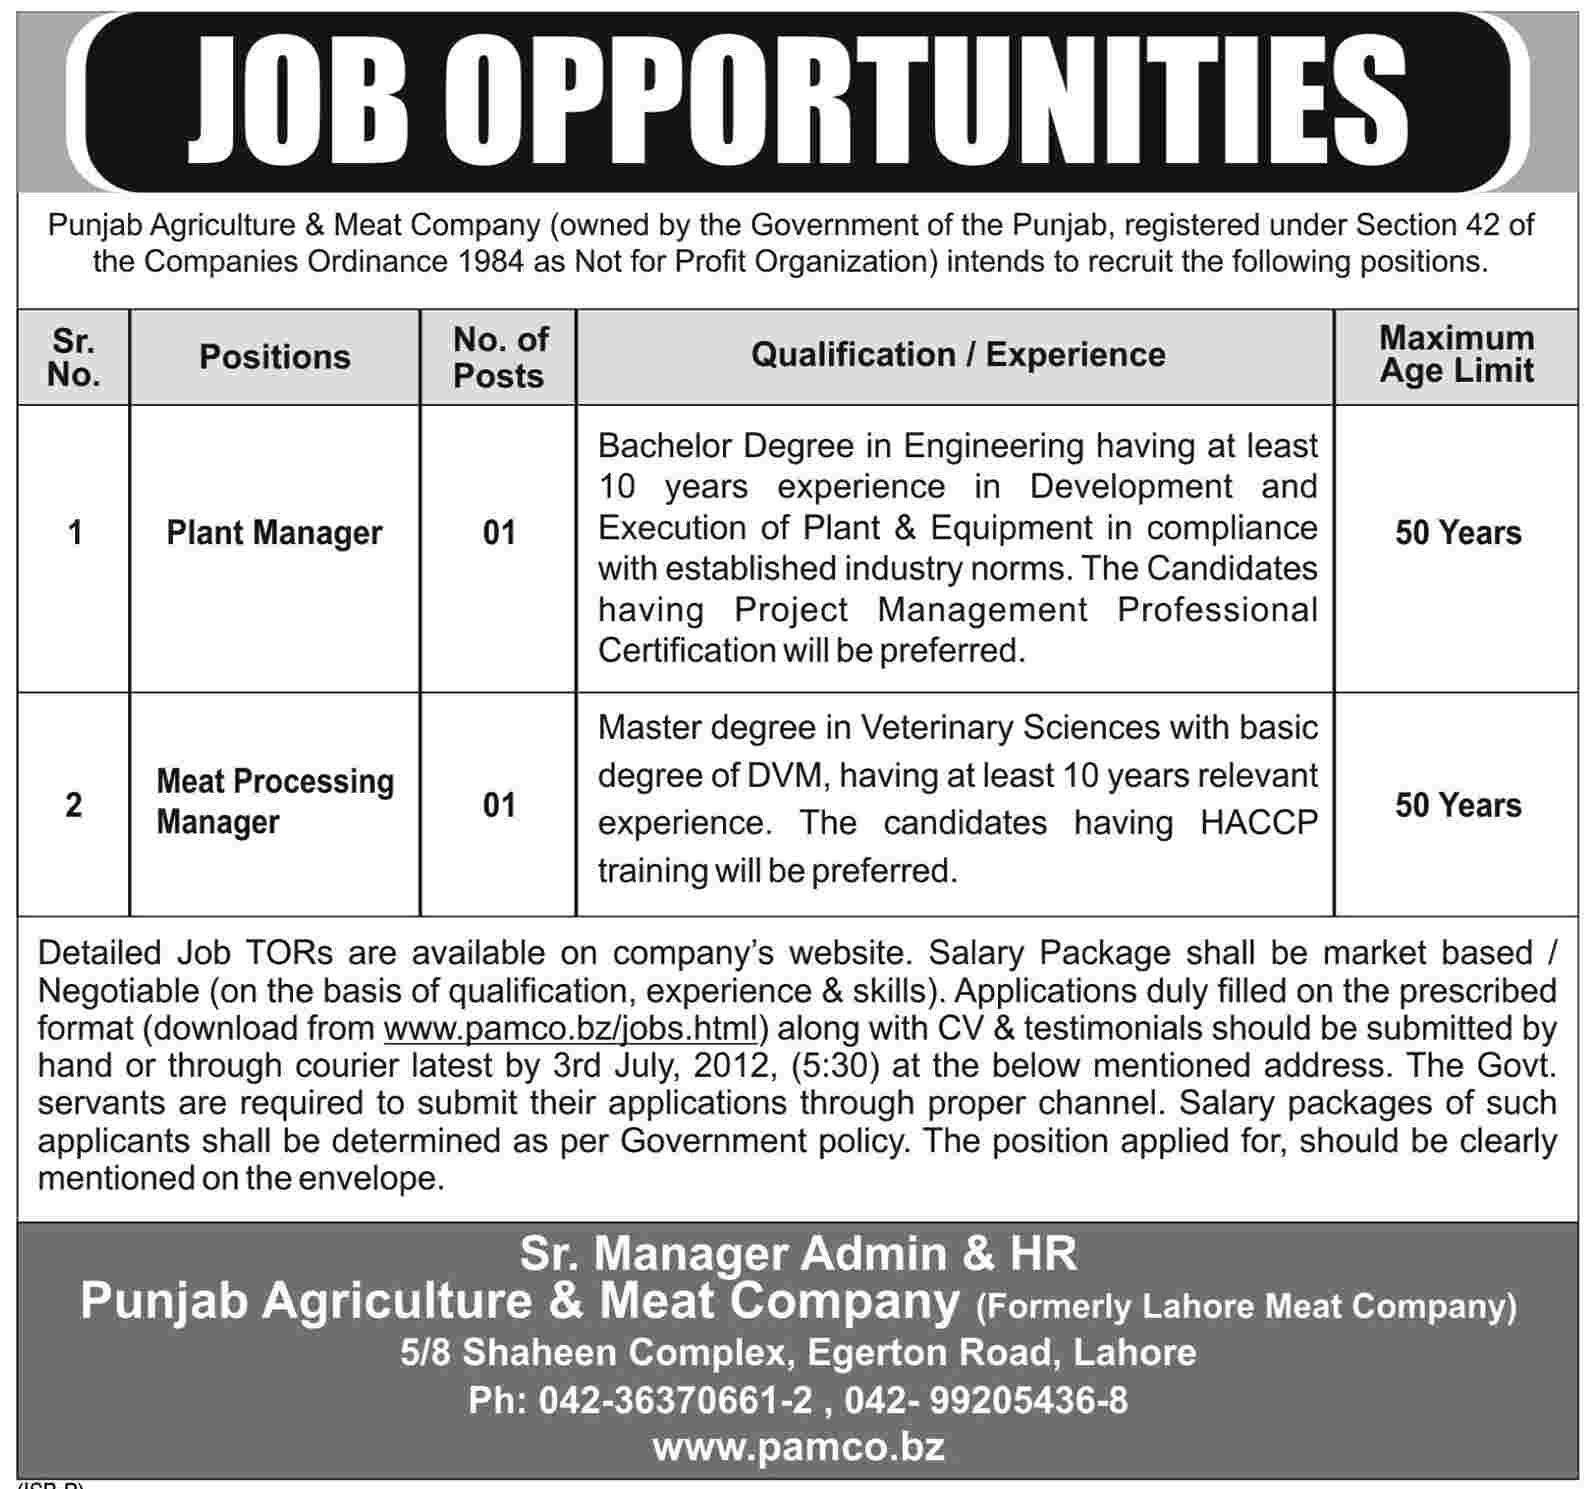 Farming Uk Meat Processing News: Plant Manager And Meat Processing Manager Job At Punjab